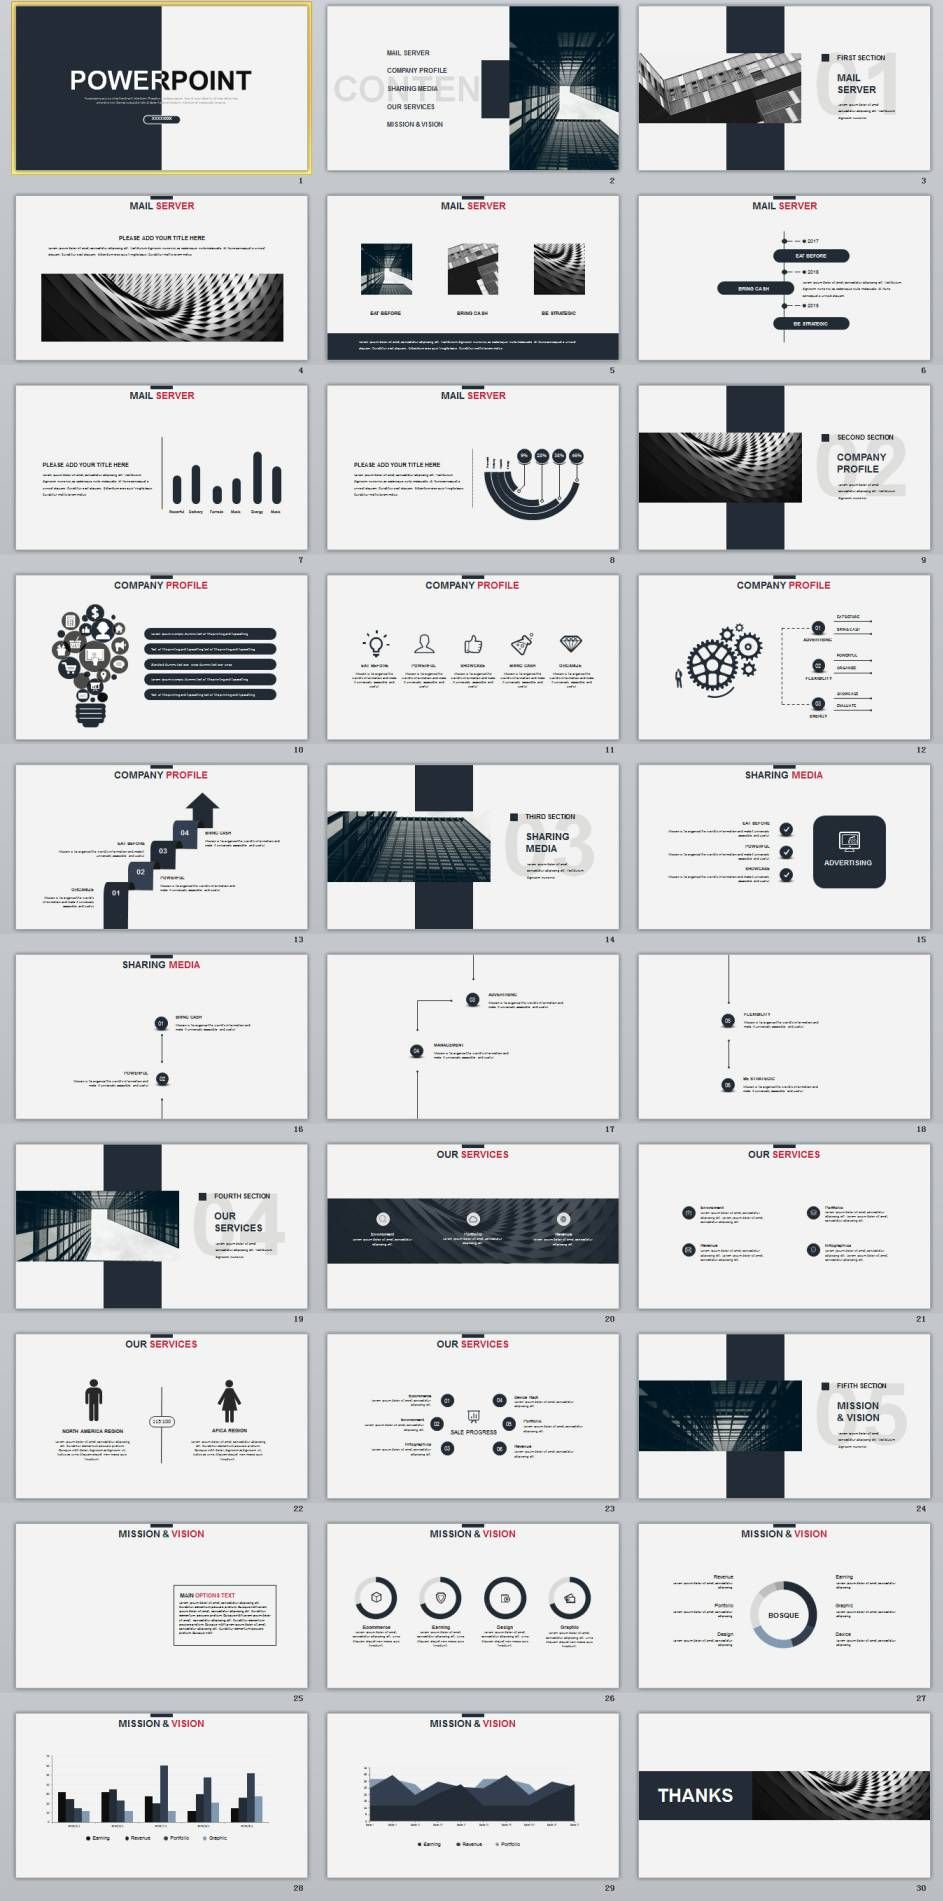 30 gray creative charts design powerpoint template design de 30 gray creative charts design powerpoint template toneelgroepblik Image collections